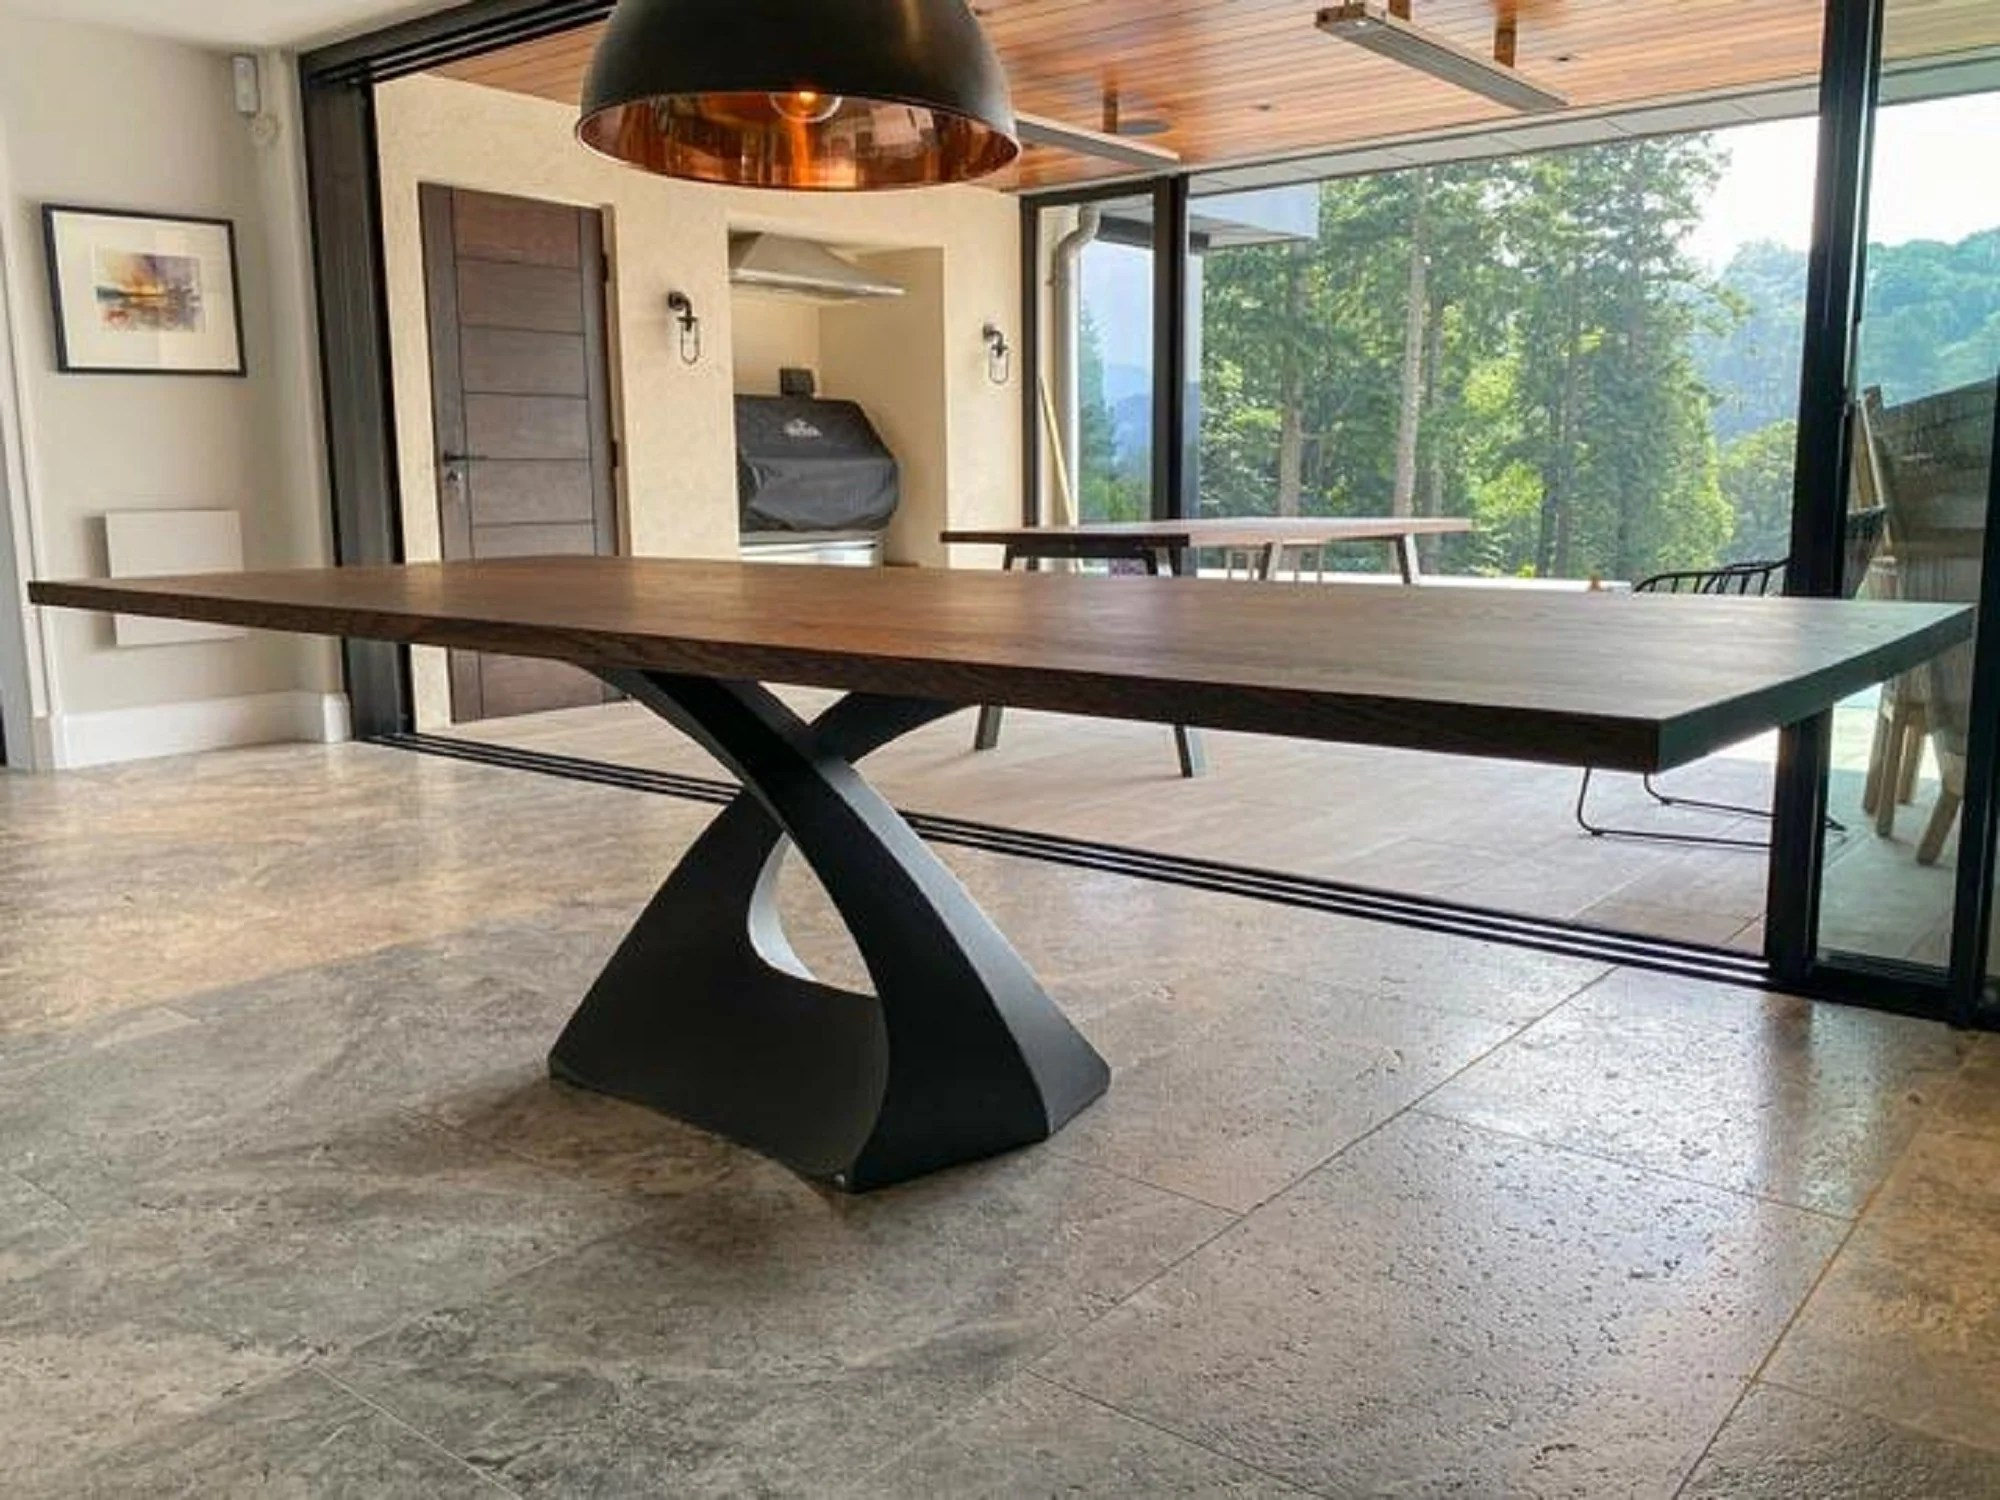 flowyline design metal table legs and